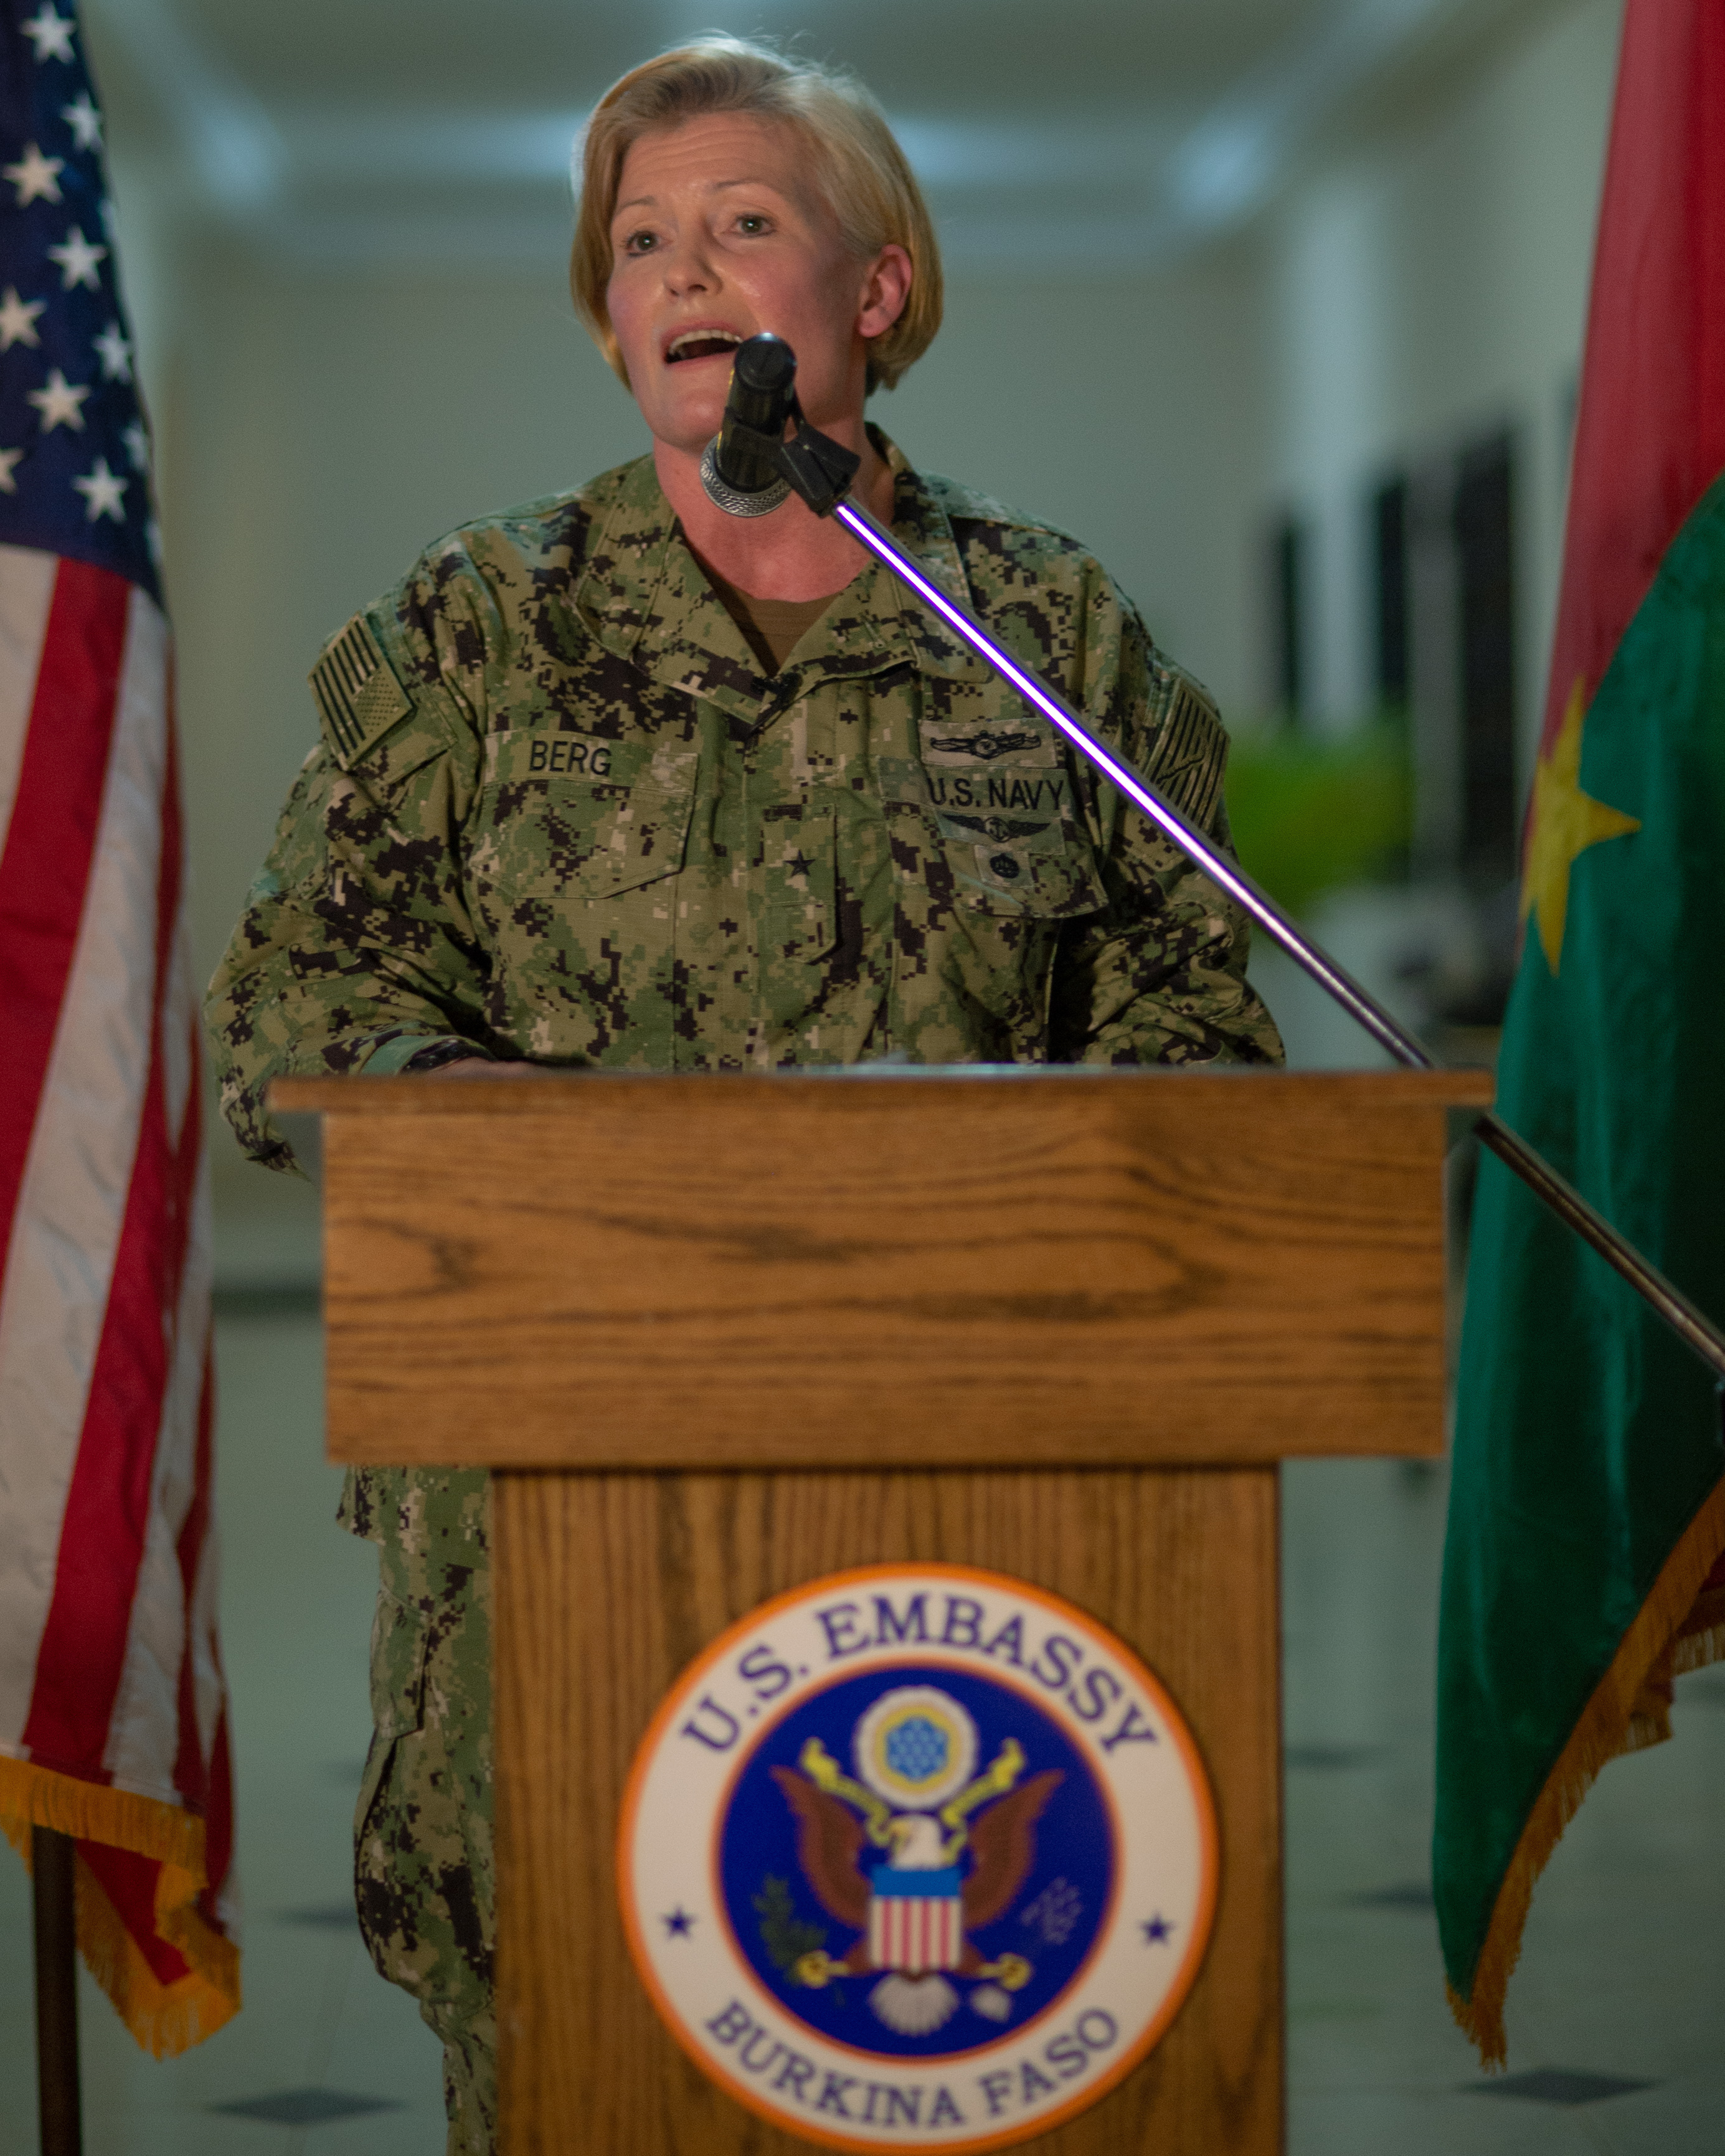 "Rear Adm. Heidi Berg, U.S. Africa Command, director of intelligence, addresses a crowd during a U.S. Embassy hosted Women, Peace and Security Reception in Ouagadougou, Burkina Faso Feb. 19. She emphasized women's roles for a secure, stable and prosperous Africa.  ""We face hard, complex problems in Africa, and the greatest diversity of thought and perspective, as well as access to the best talent, is essential,"" Berg said during her speech.  Berg along with others pushed for a greater integration and utilization of women both on and off the battlefield.  Flintlock 2019 better enables African and western partners to conduct real world missions structured around a coherent campaign plan and seamless integration. (U.S. Navy photo by MC2 (SW/AW) Evan Parker / released)"